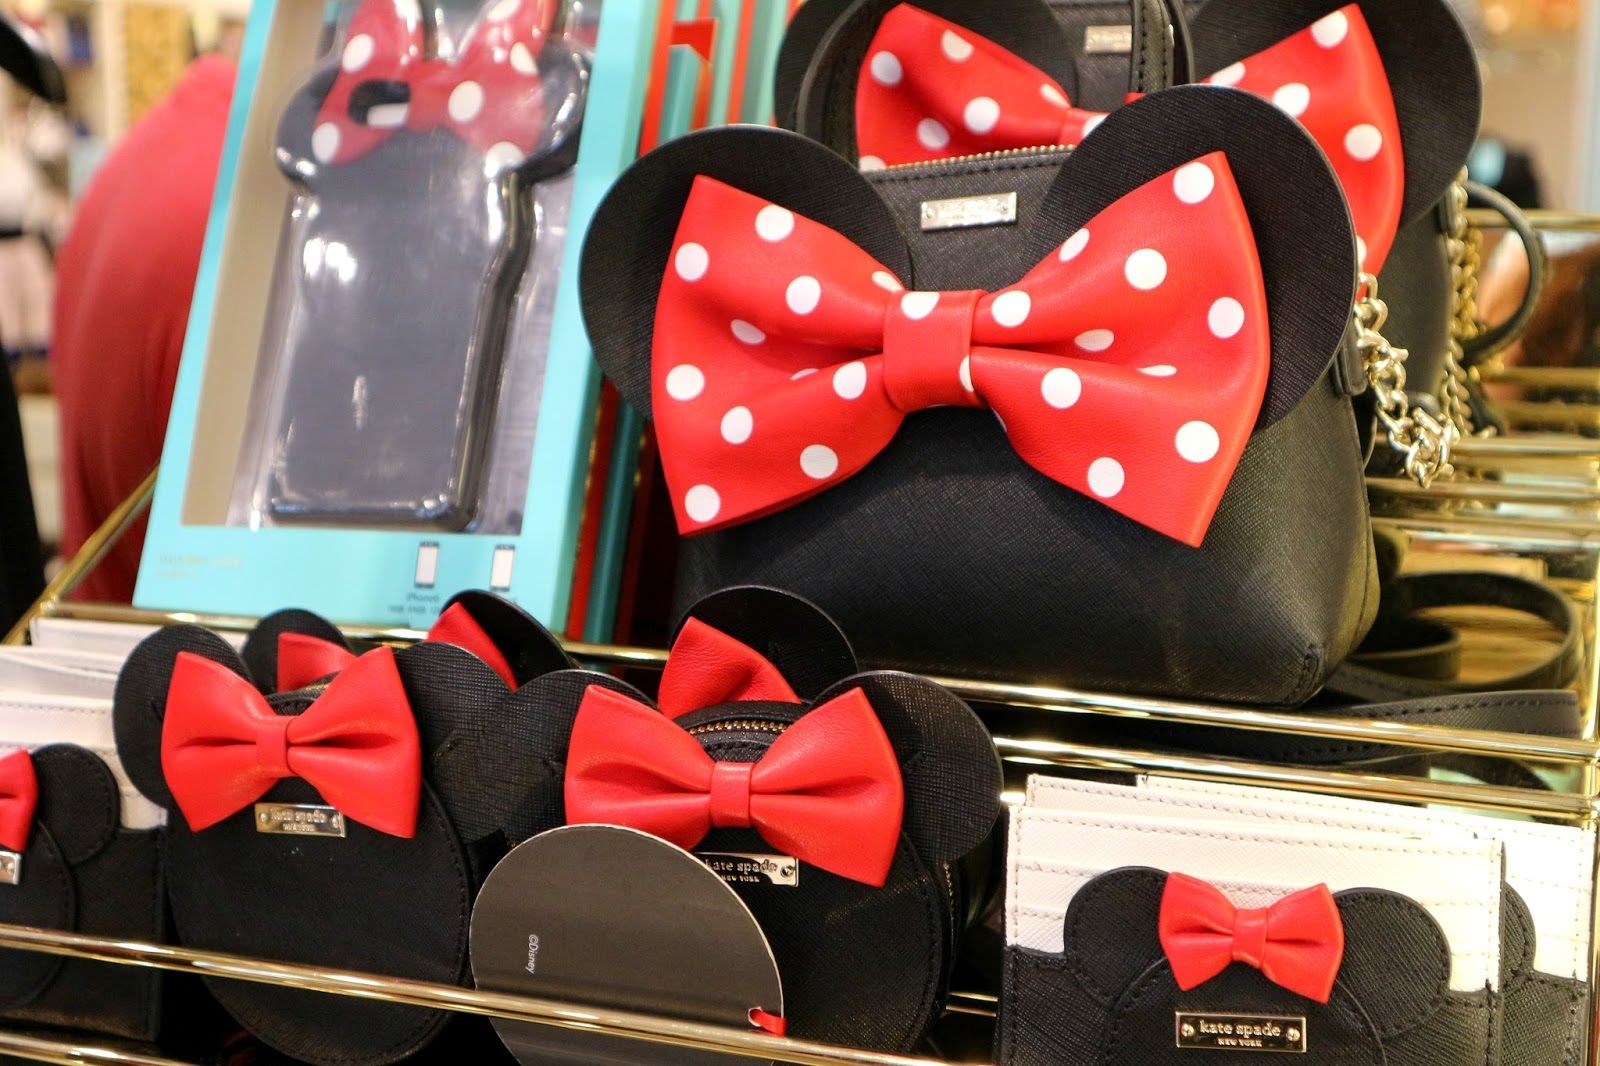 Kate Spade New York x Minnie Mouse at Disney Springs